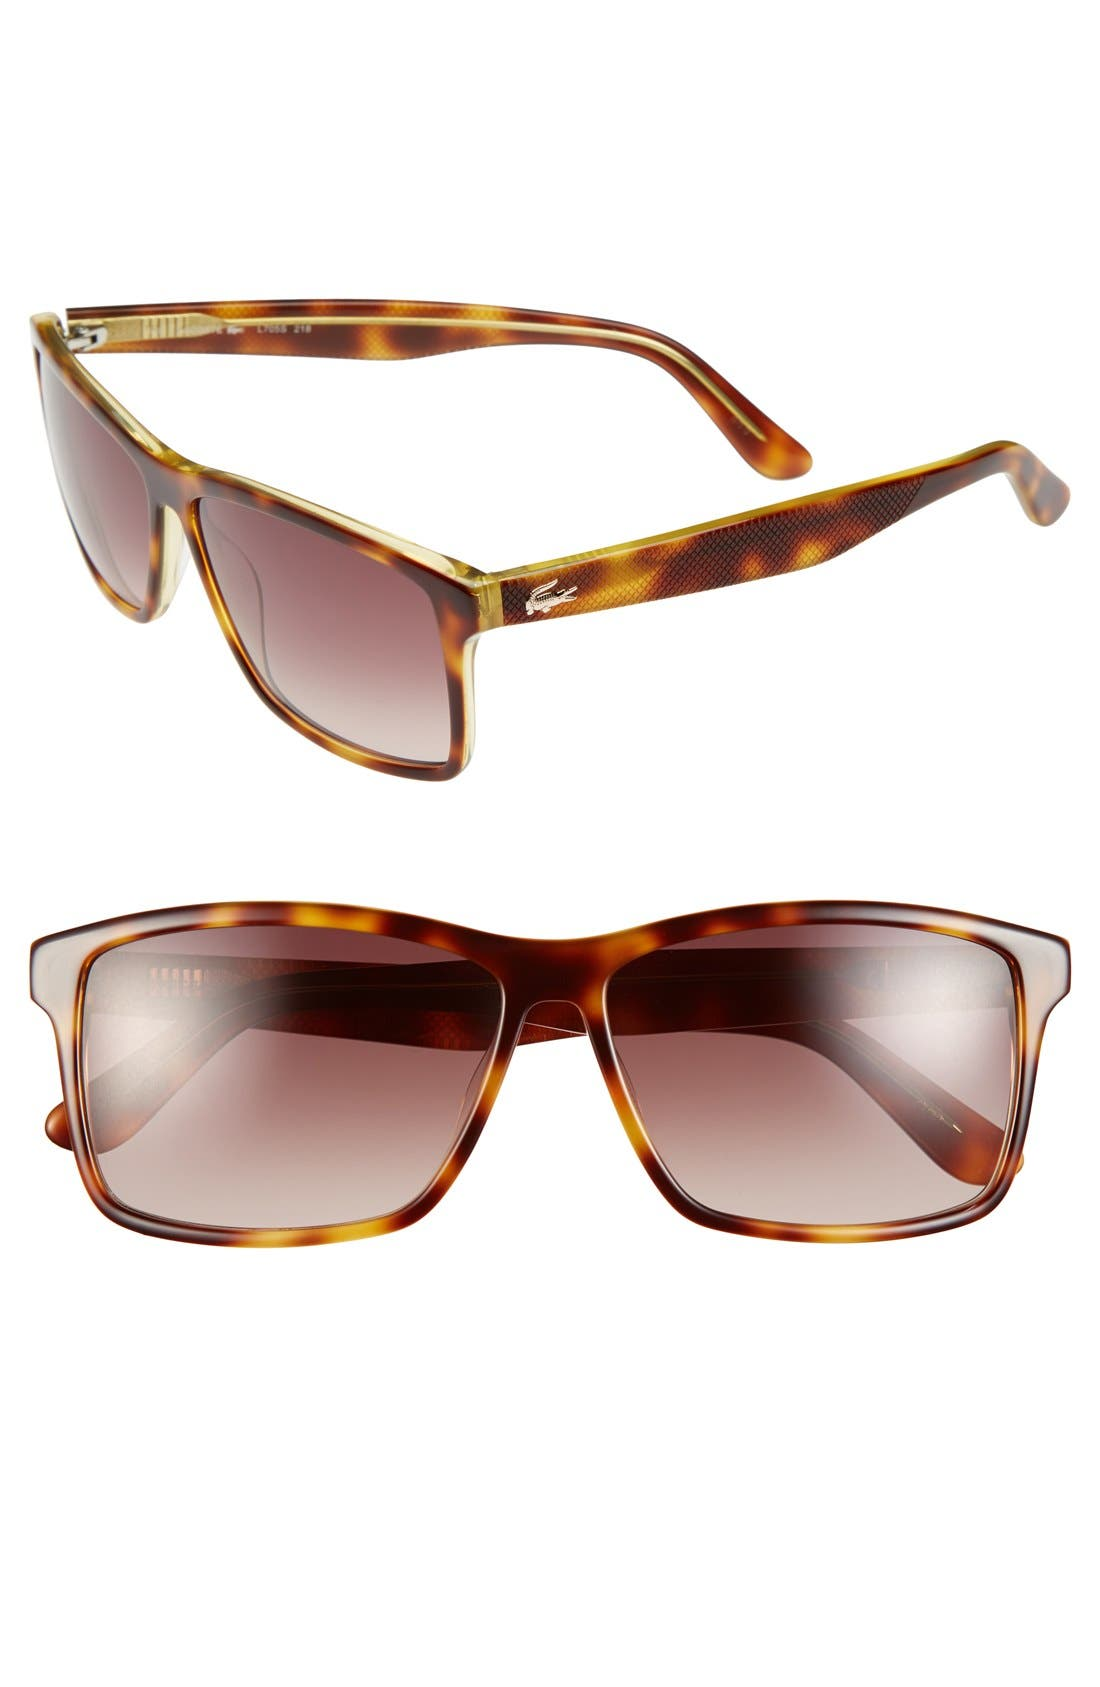 Alternate Image 1 Selected - Lacoste 57mm Sunglasses